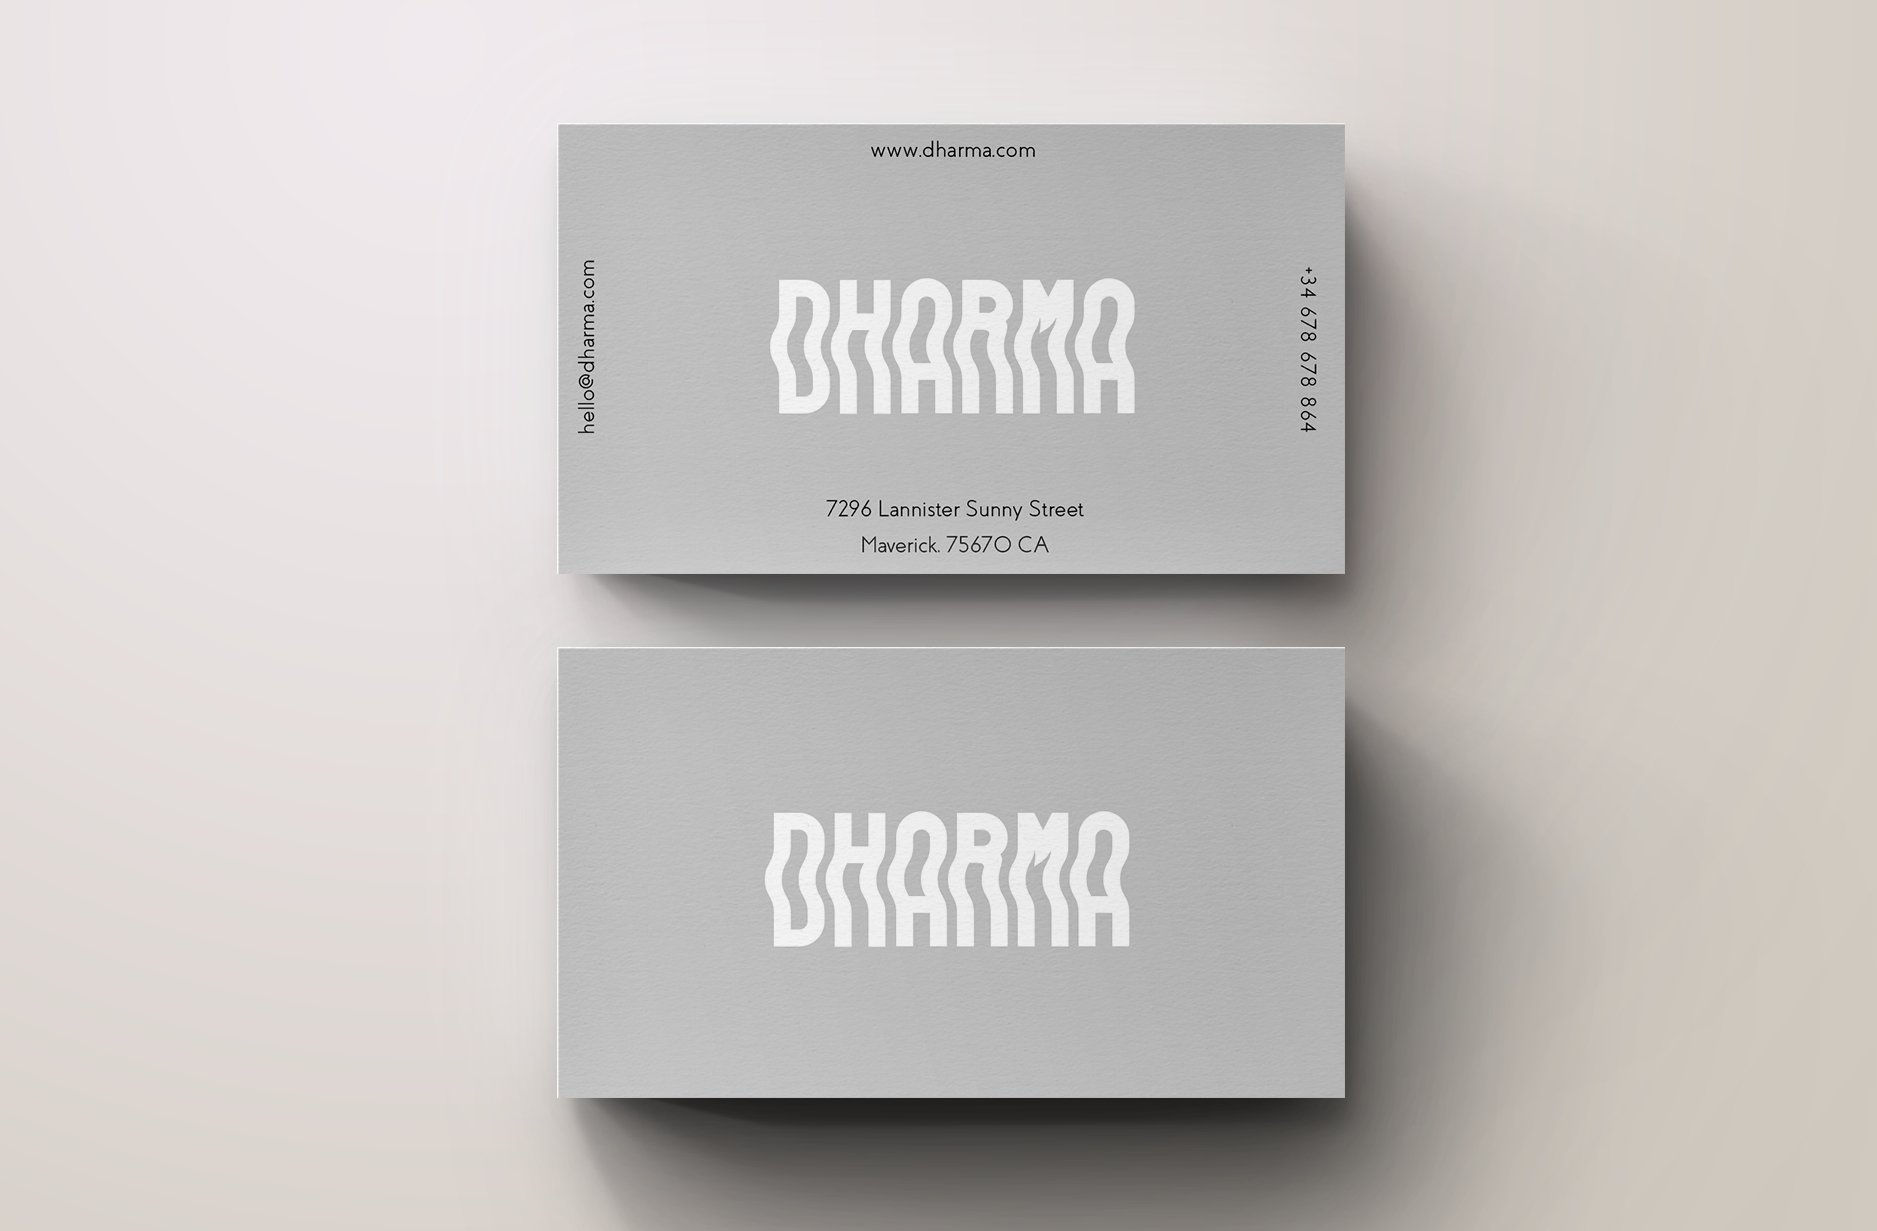 Dharma modern grey business card business card templates dharma modern grey business card business card templates creative market reheart Image collections